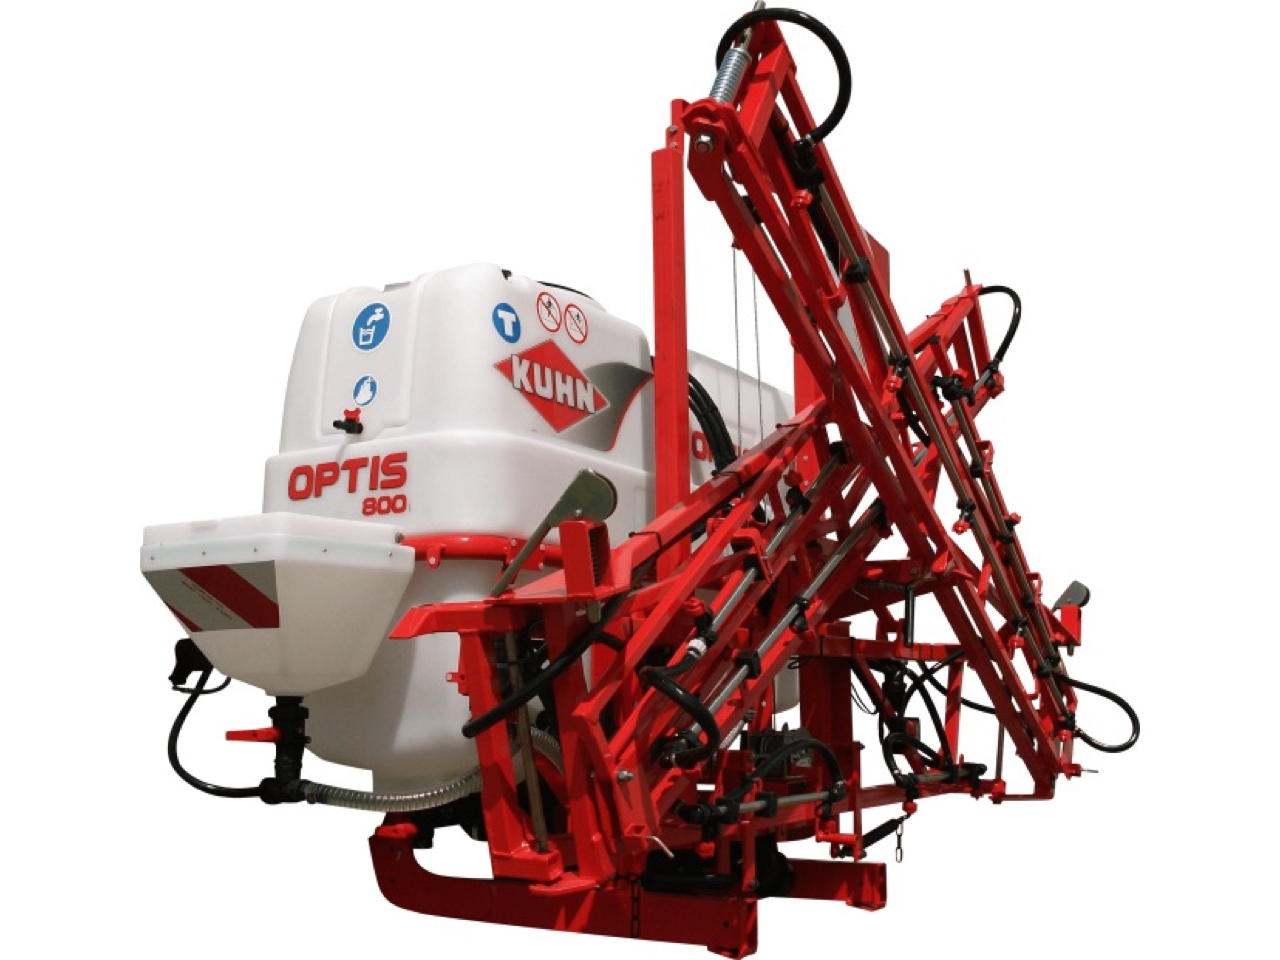 Kuhn Optis Optis 800